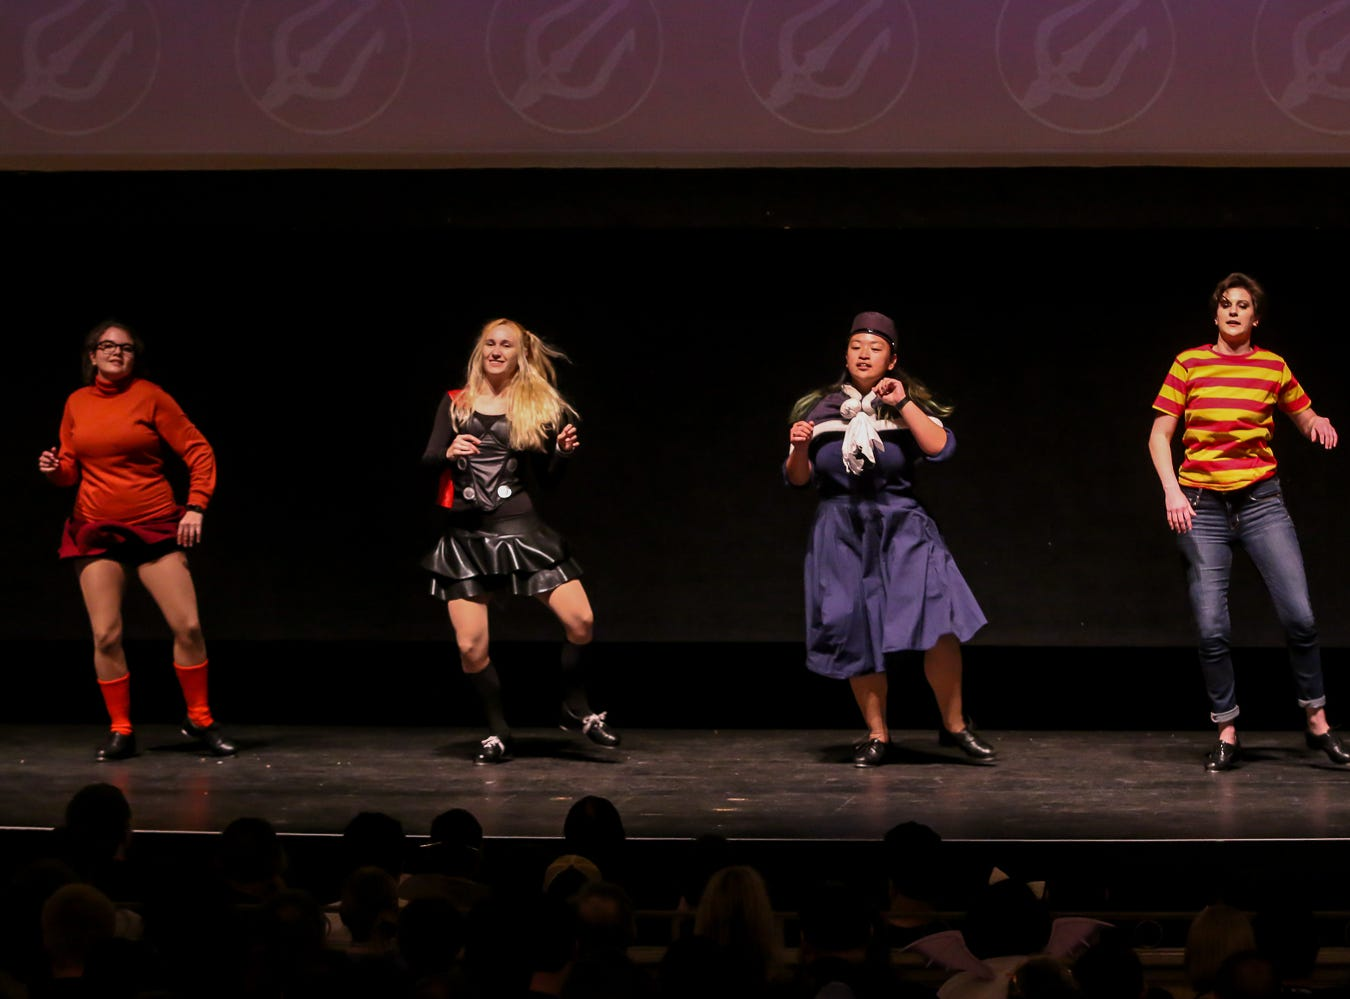 Tap dance ensemble Noise Complaint performs during the Pensacon cosplay contest presented by McGuire's Irish Pub at the Saenger Theatre on Saturday, February 23, 2019.